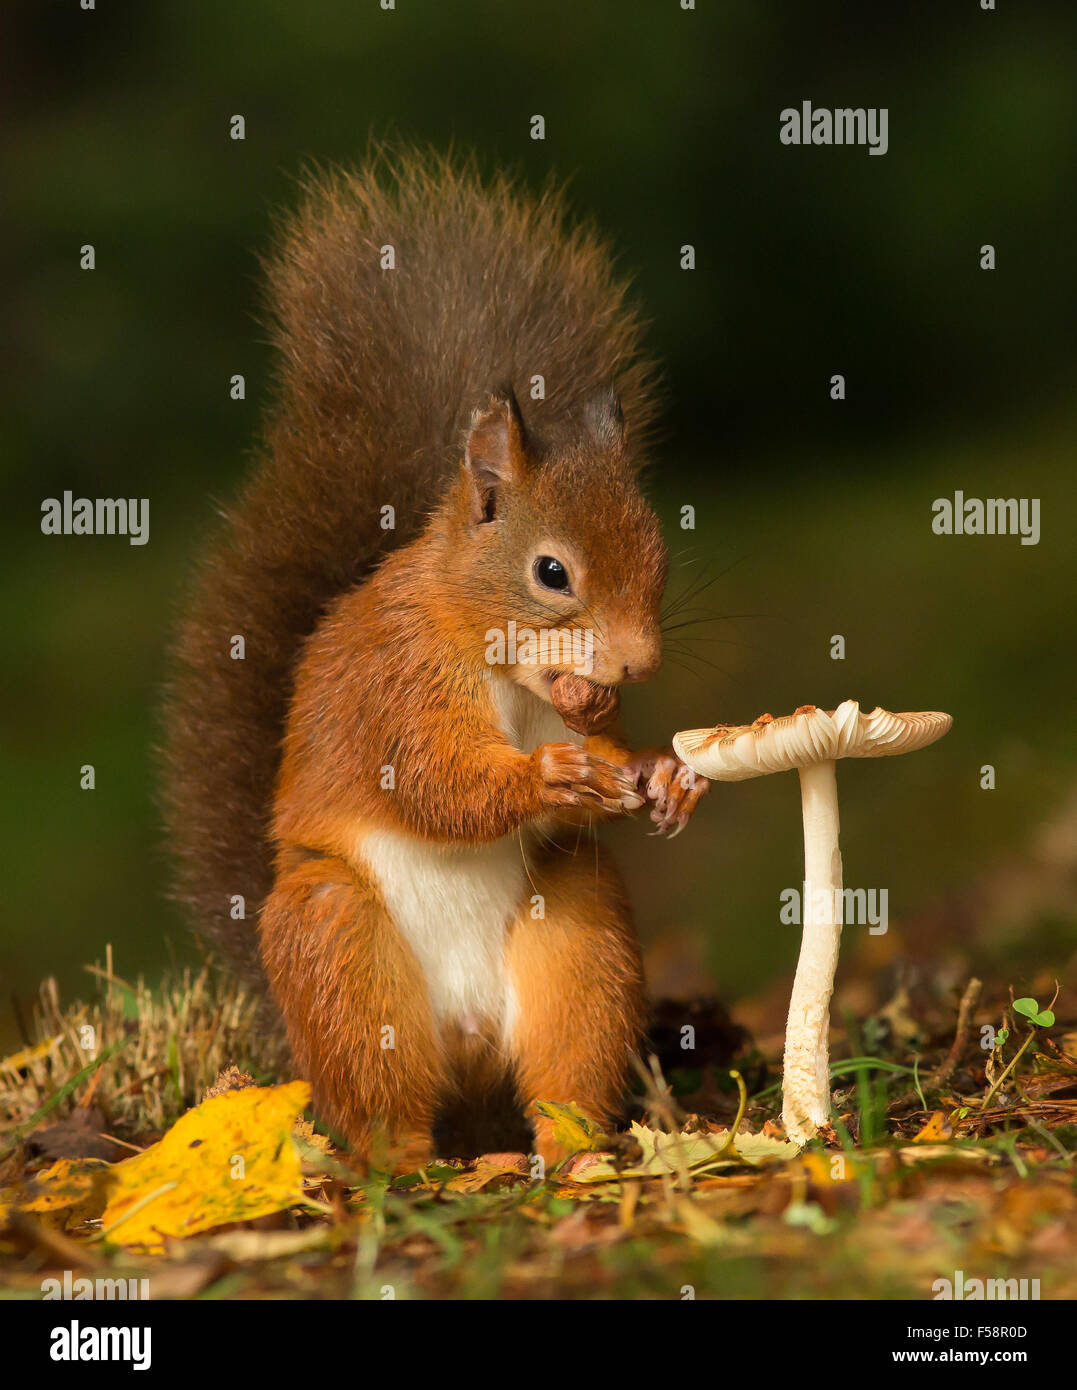 Red squirrel with a hazelnut in its mouth standing next to a toadstool giving the impression of a personal dining table Stock Photo